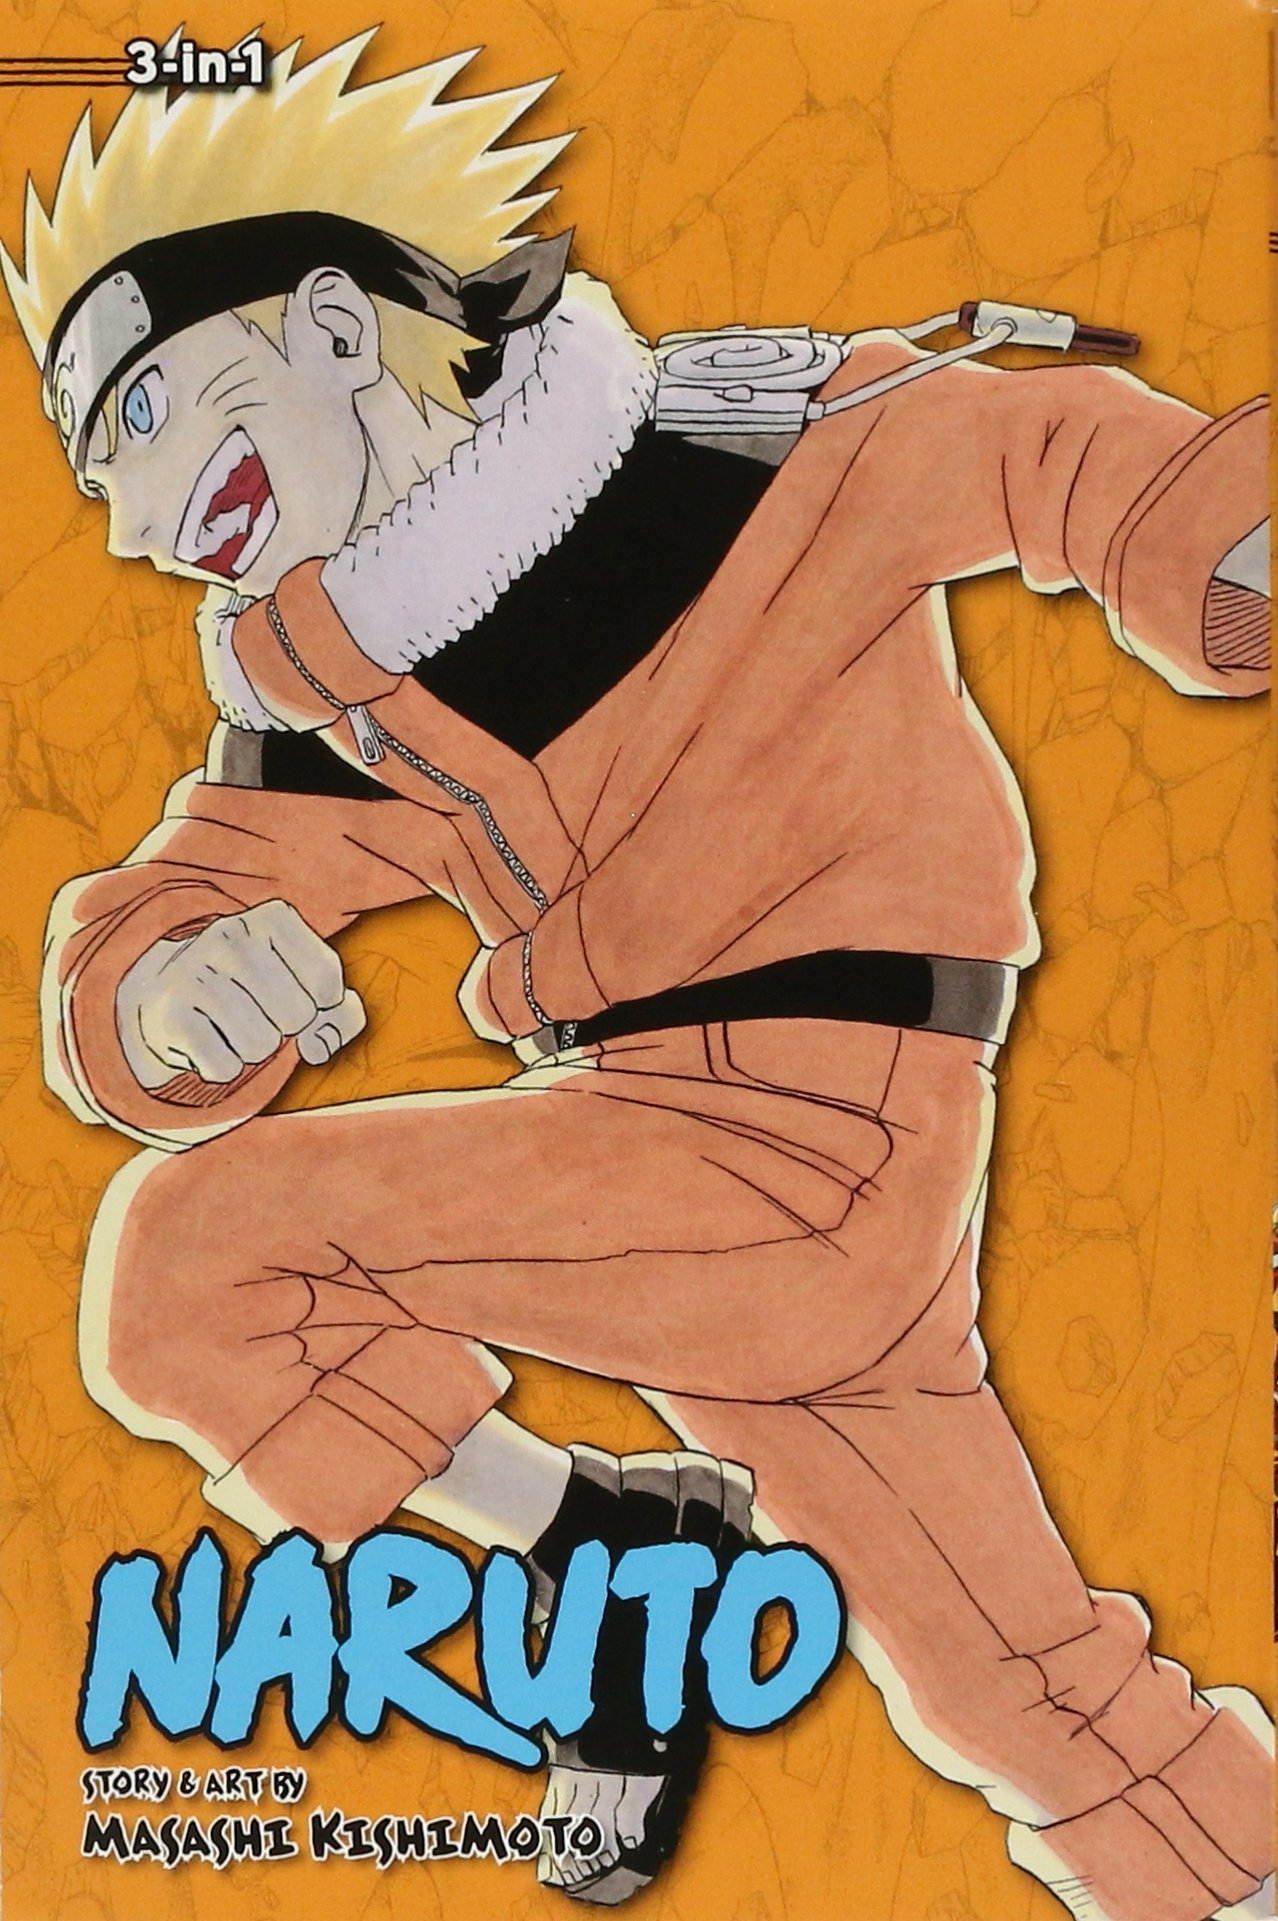 Naruto (3-in-1 Edition), Vol. 6: Includes vols. 16, 17 & 18: Masashi  Kishimoto: 9781421554907: Amazon.com: Books